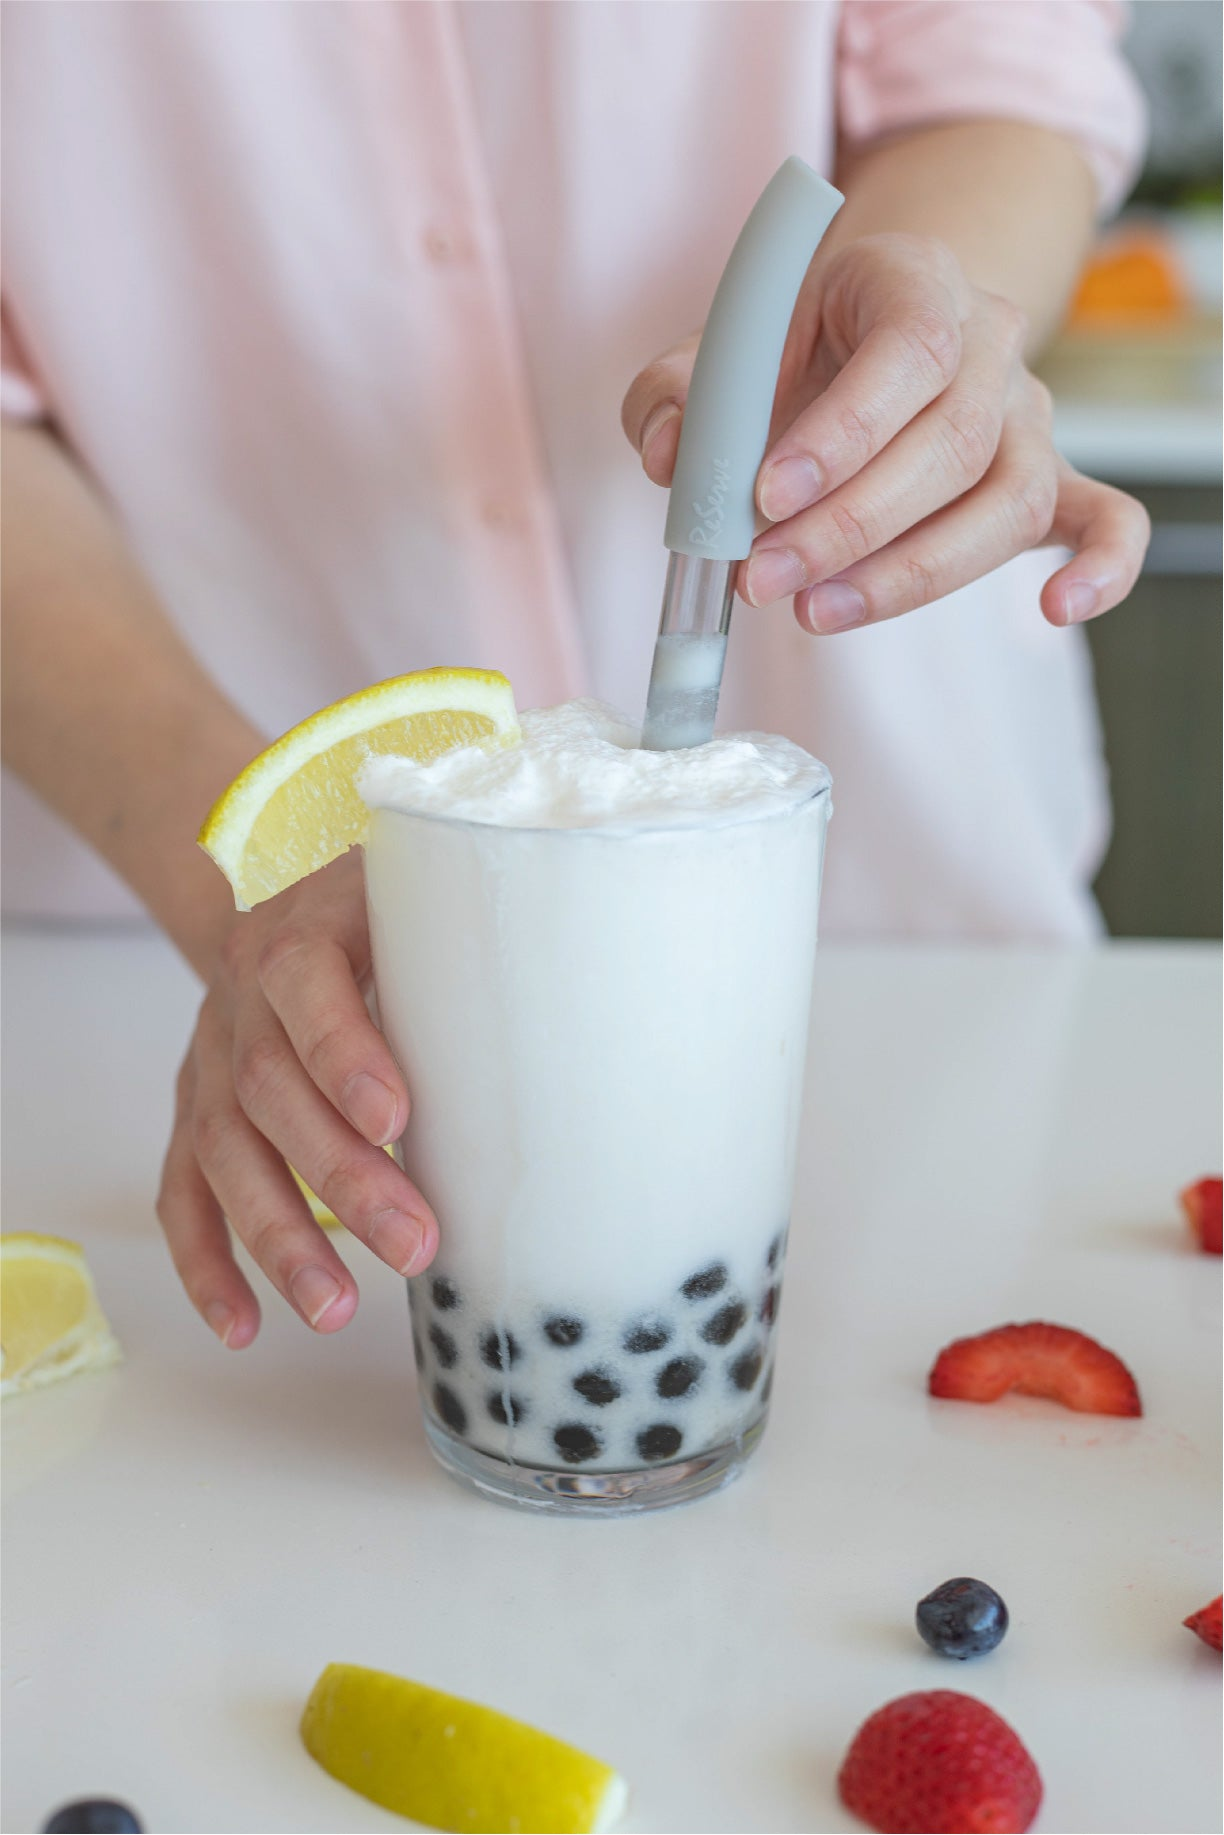 Silver bubble tea straw in a glass of coconut smoothie with pearl